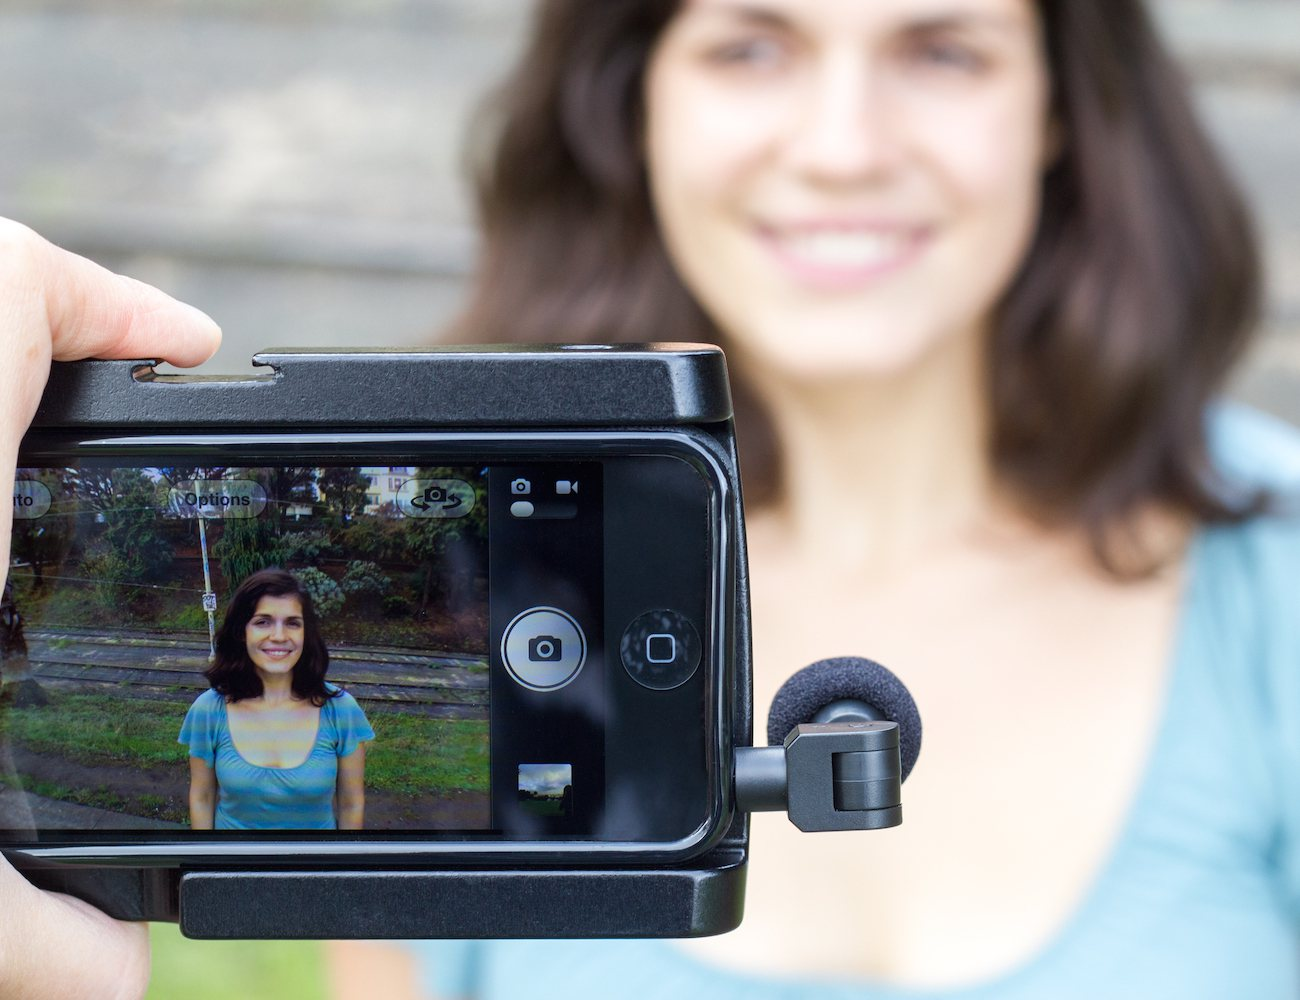 Turn your iPhone into a Hand-held Video Rig